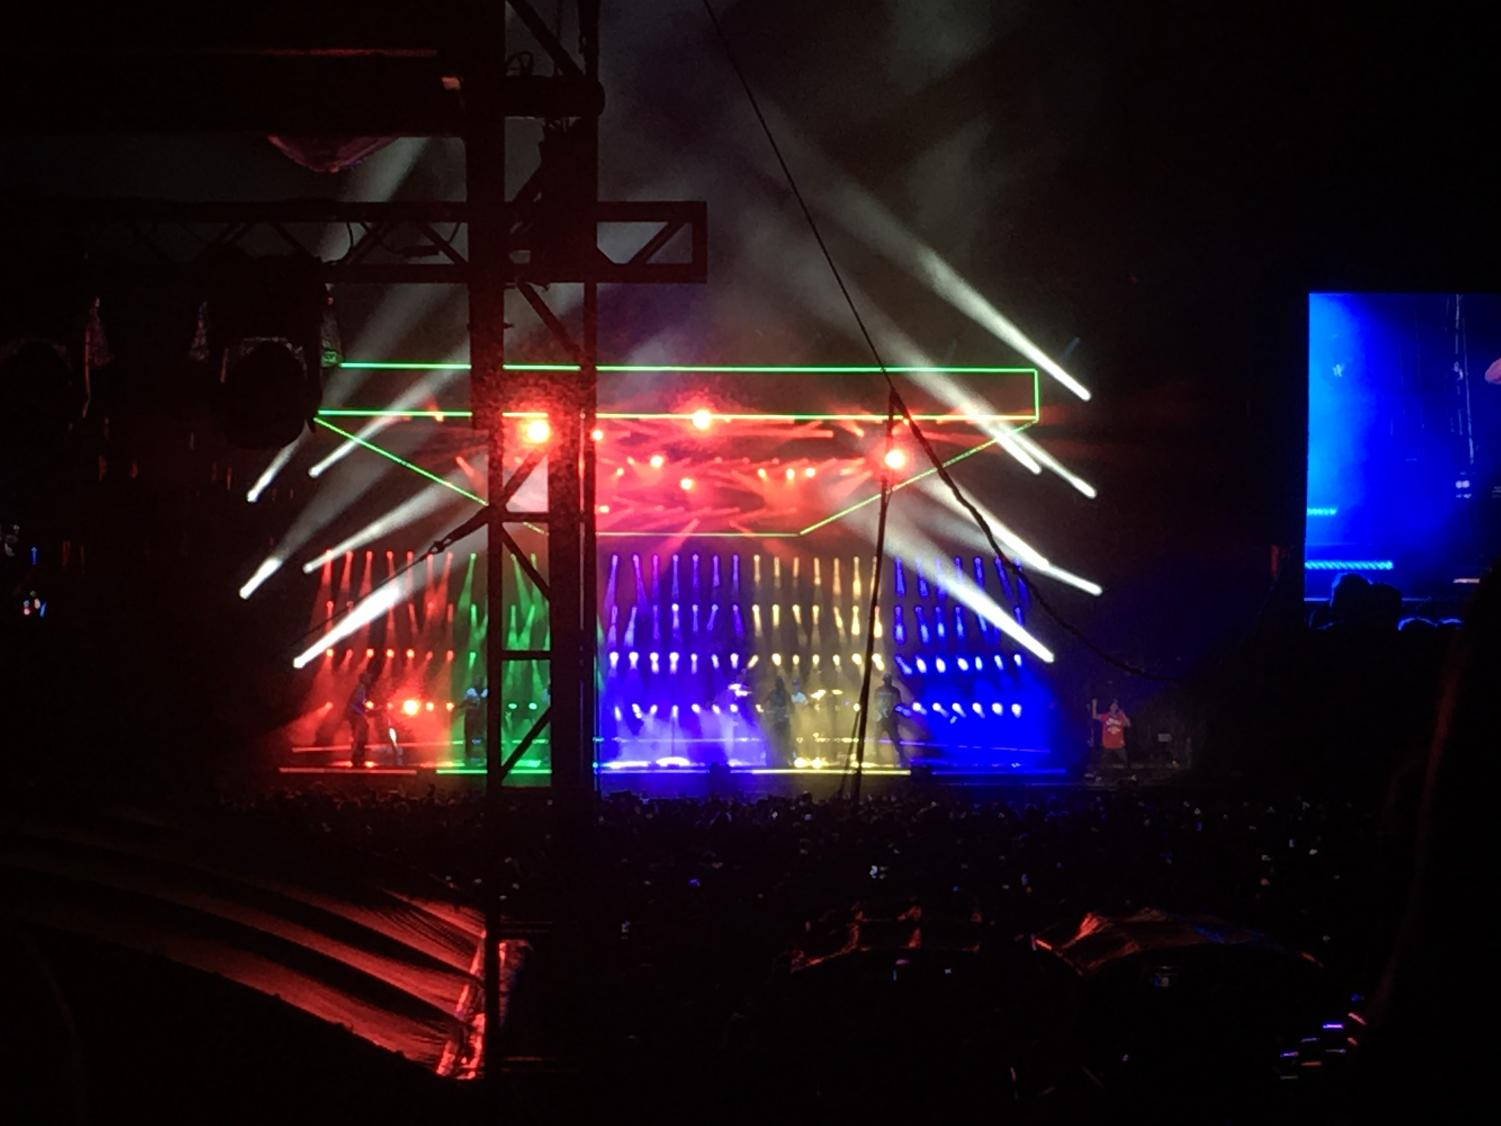 Bruno+Mars+sings+and+dances+to+his+opening+song+%22Finesse%22+with+colorful+lights+behind+him.